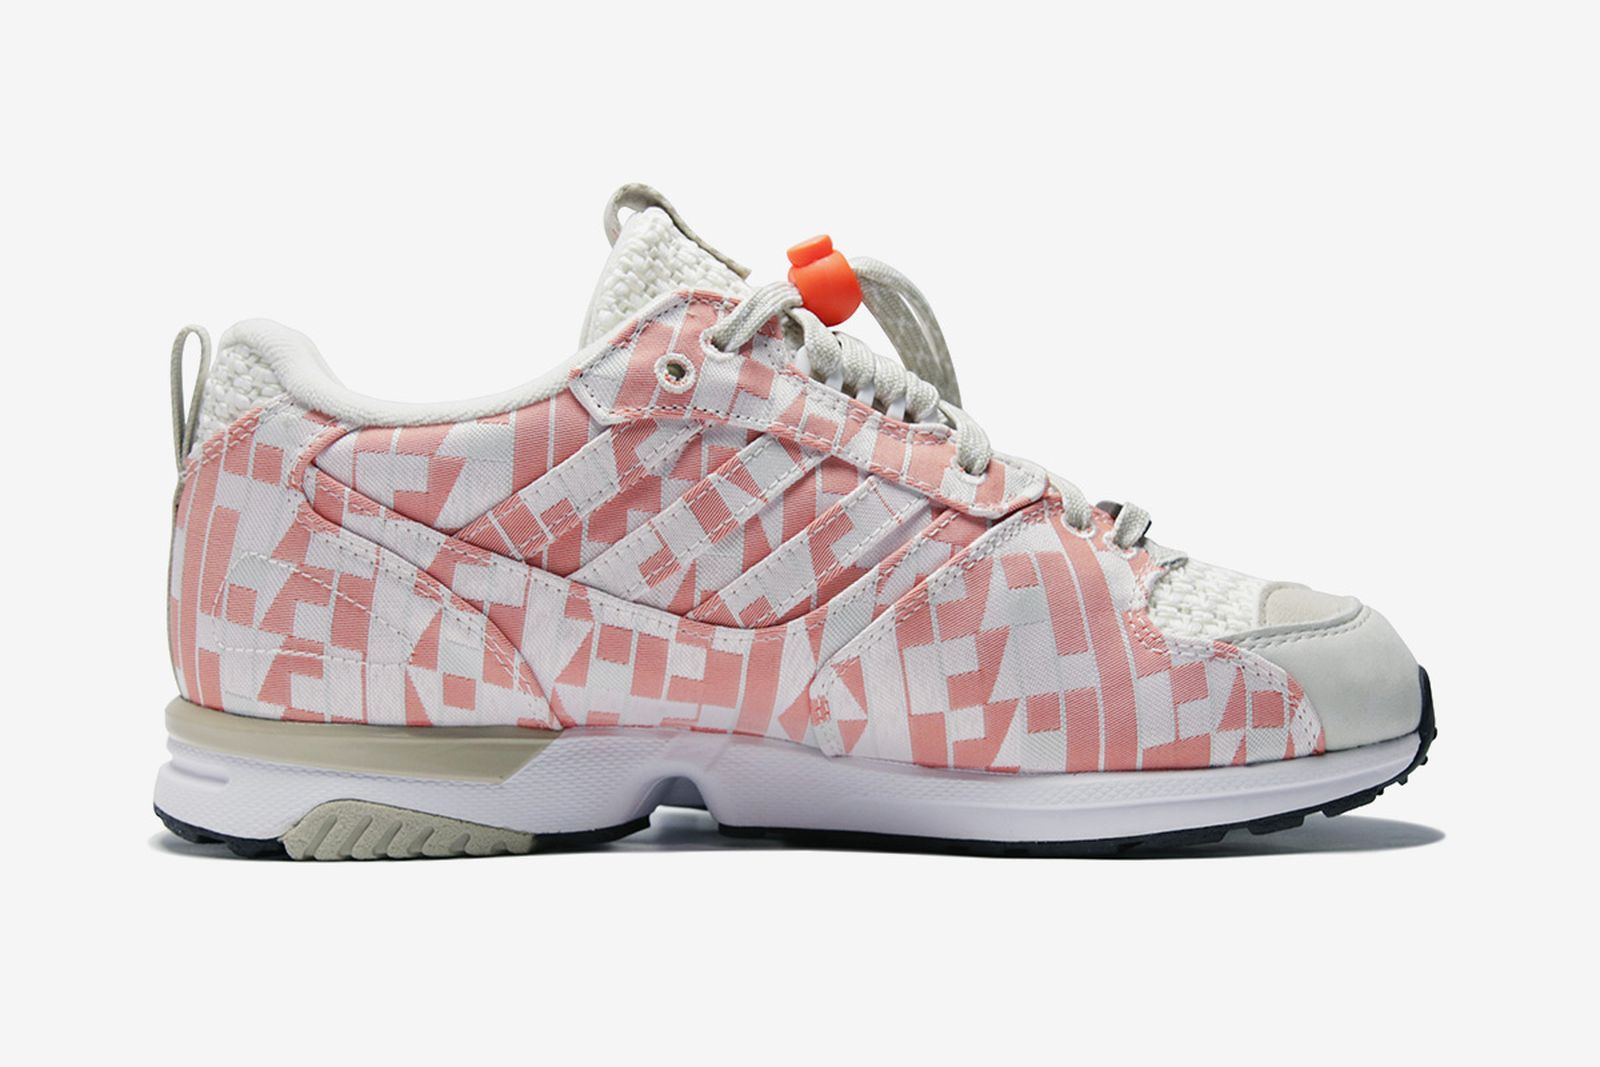 shelflife adidas consortium zx4000 release date price product adidas ZX4000